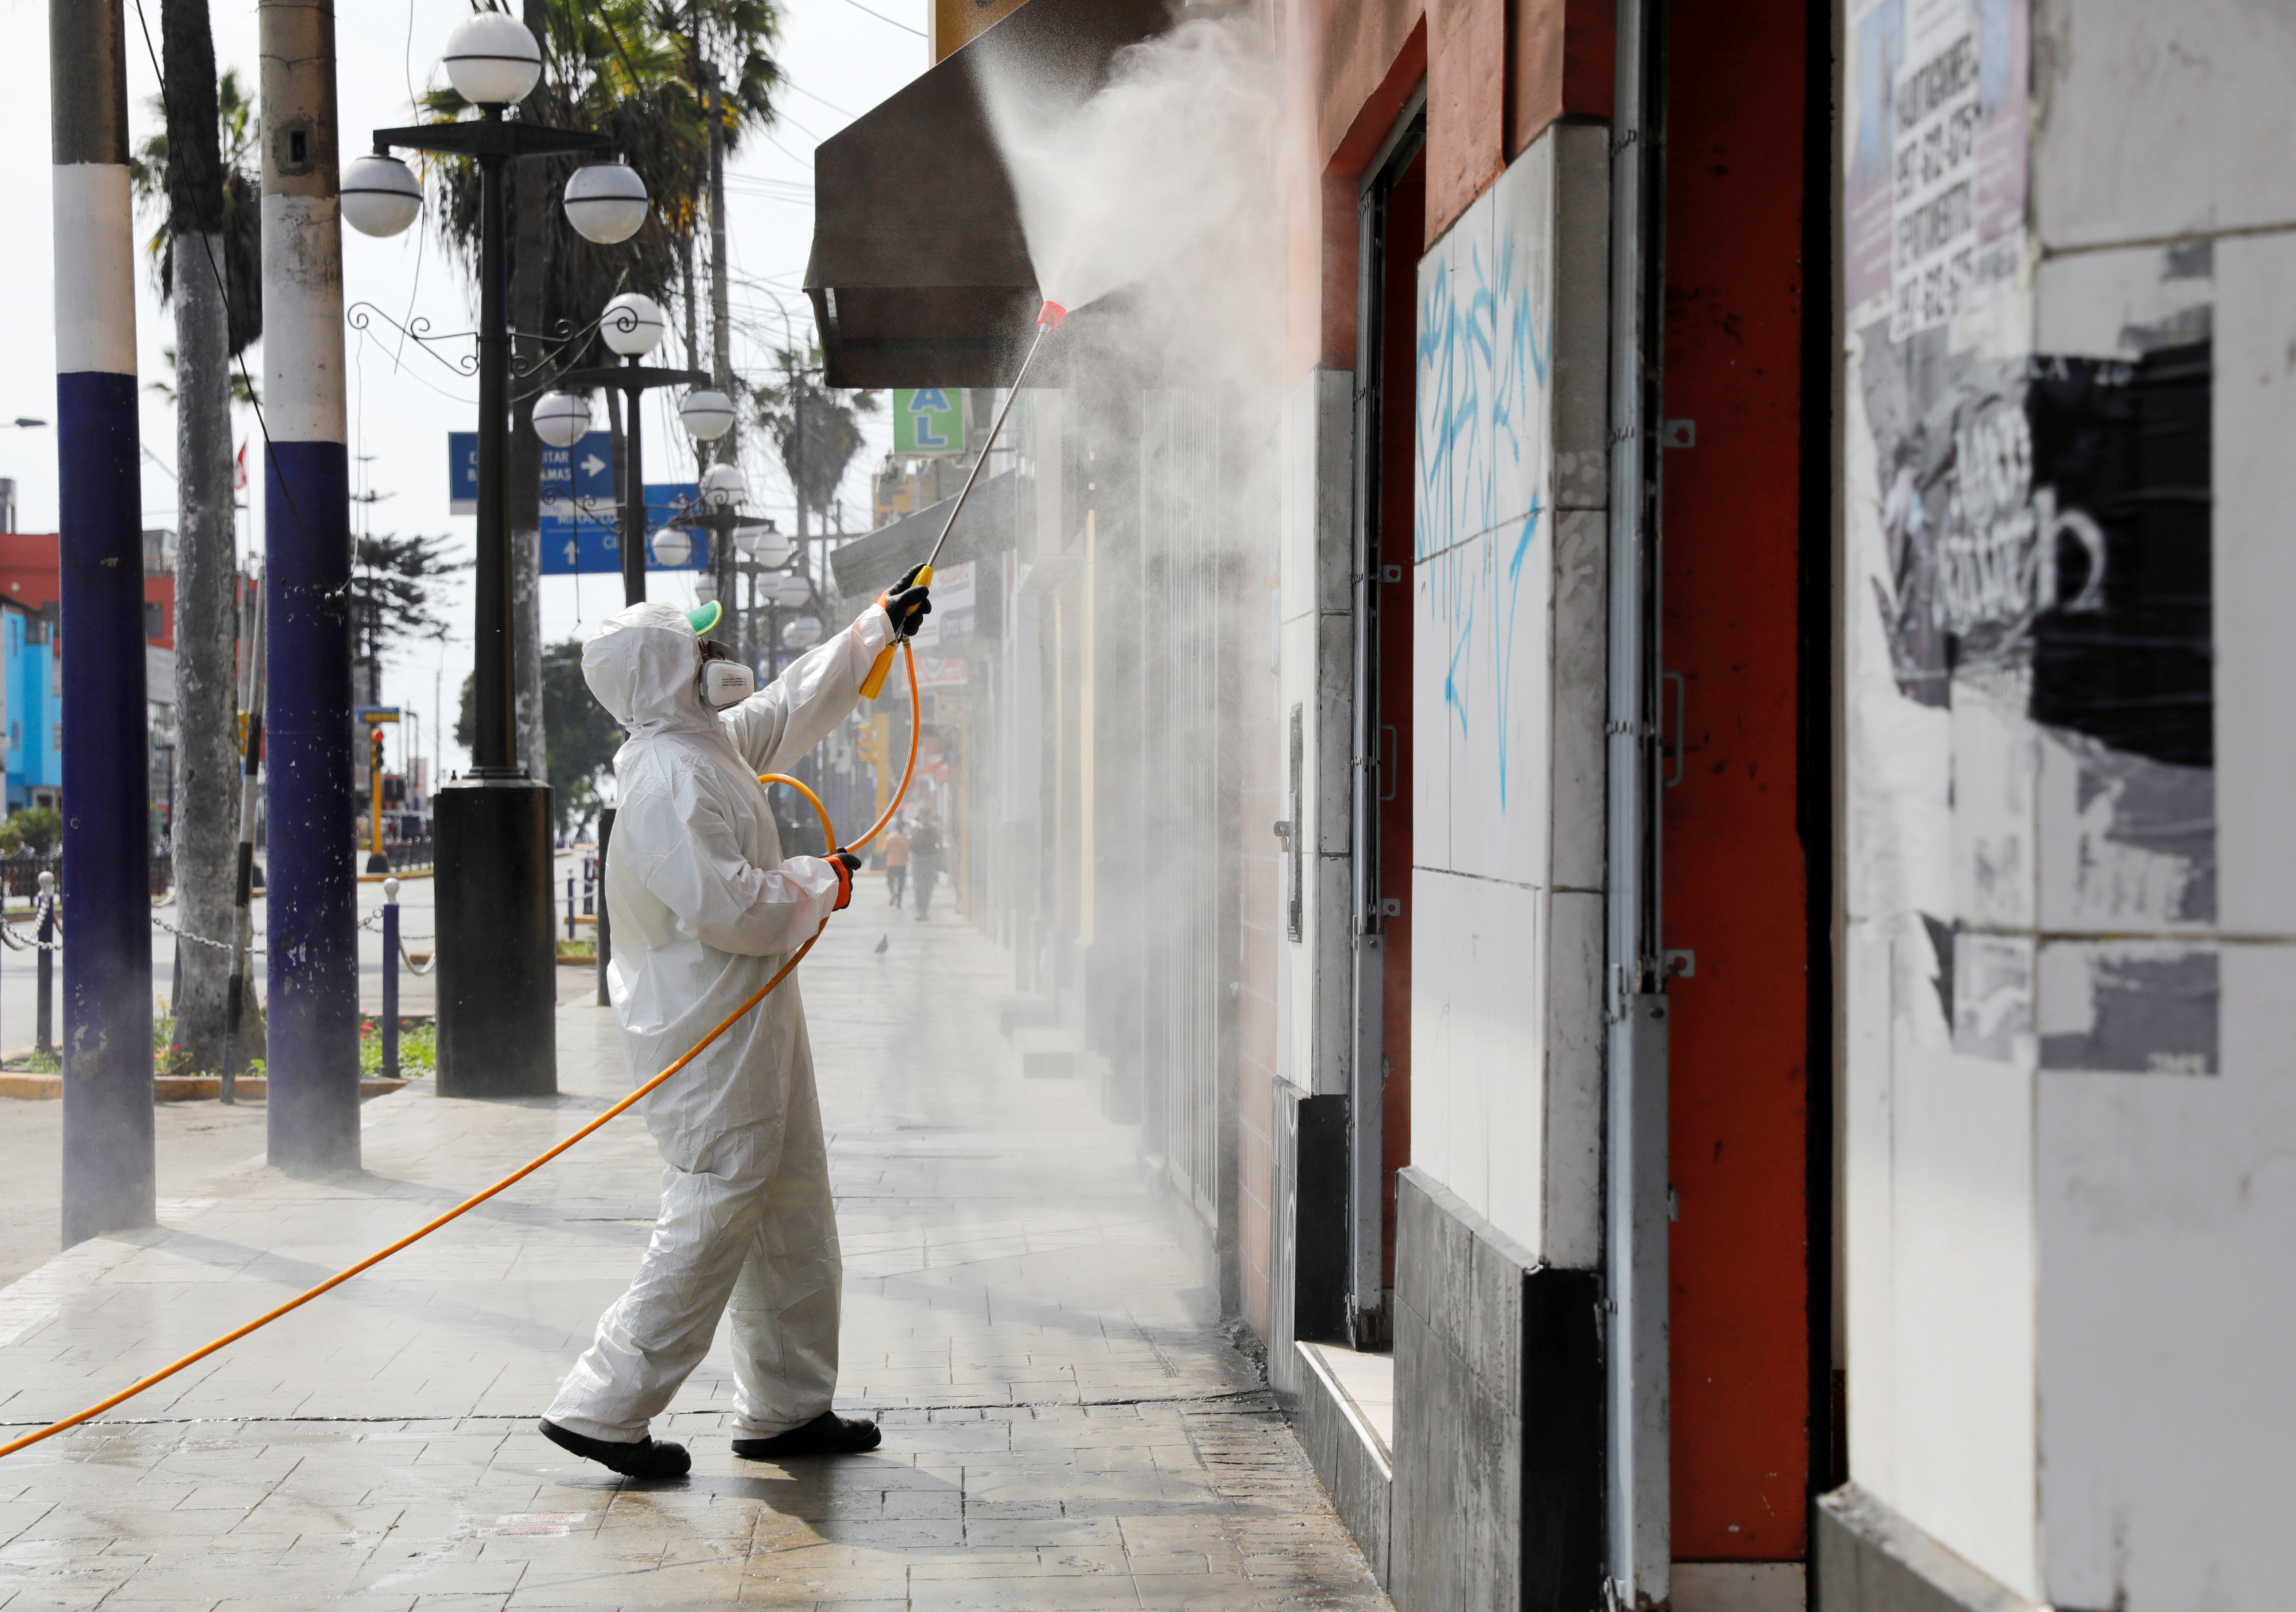 A municipal worker cleans the streets and facades in the Chorrillos neighborhood as Peru's government considers extending the days of the state of emergency and curfew to stop the spread of the coronavirus disease (COVID-19), in Lima, Peru March 21, 2020. Picture taken March 21, 2020.  Photo: Reuters